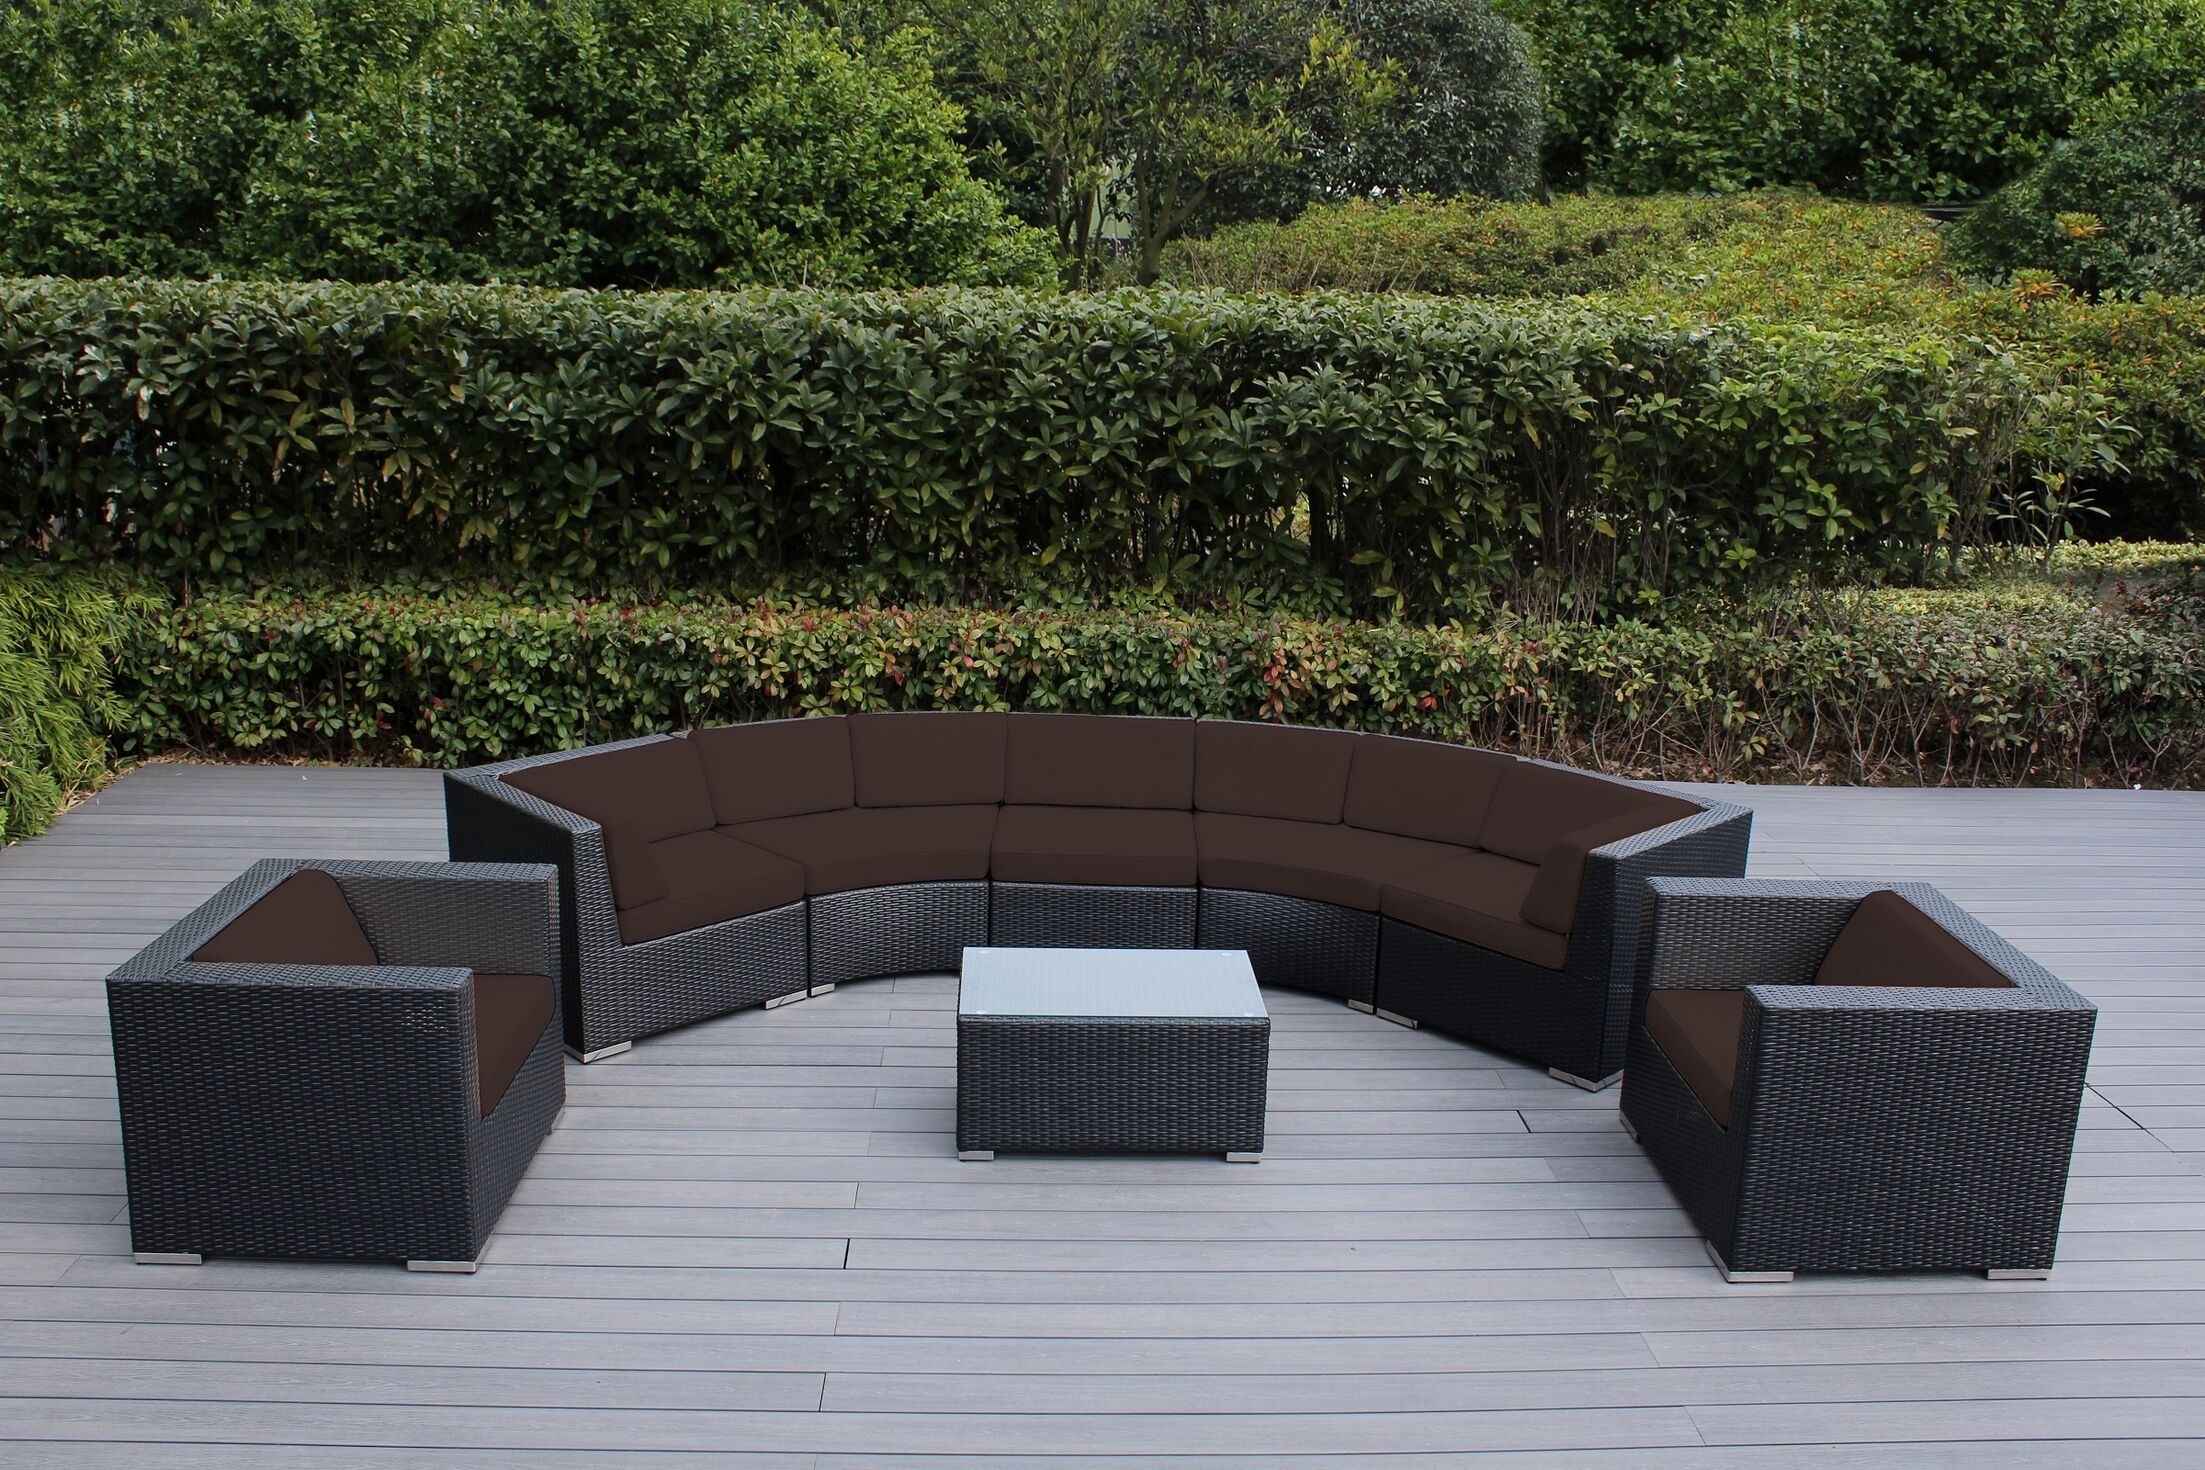 Popham 8 Piece Rattan Sectional Set with Cushions Cushion Color: Brown